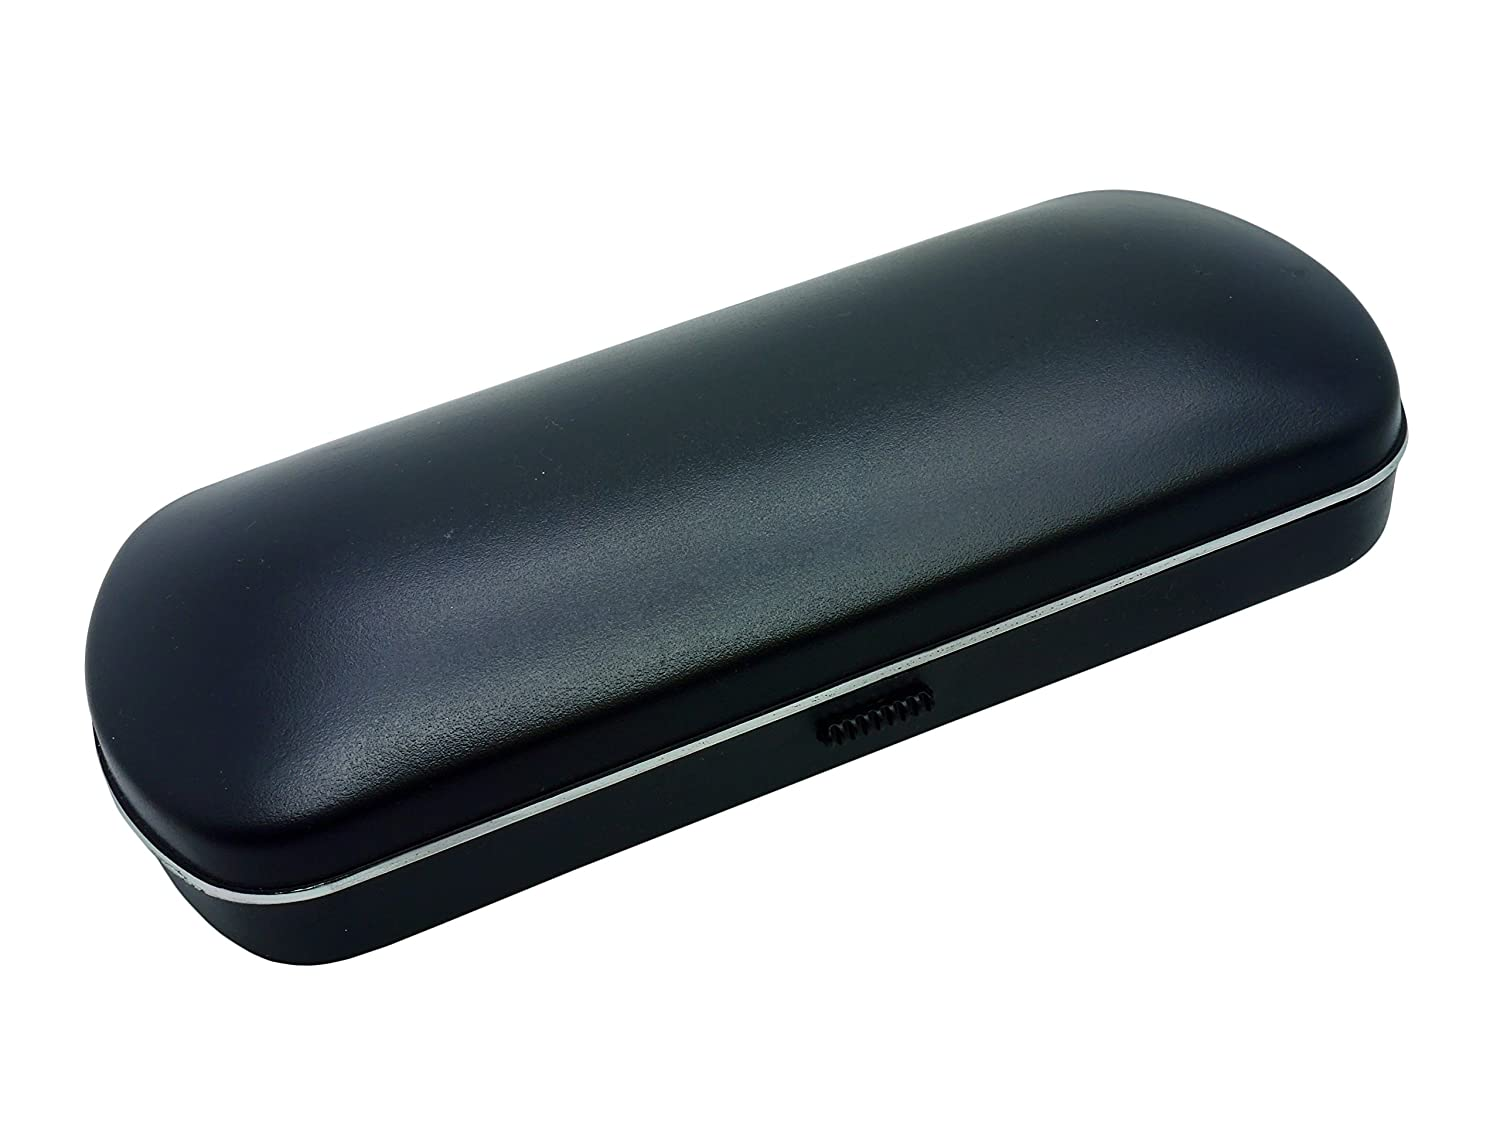 Hard Protective Black Glasses Spectacle Sunglasses Case Easy Push Button Open